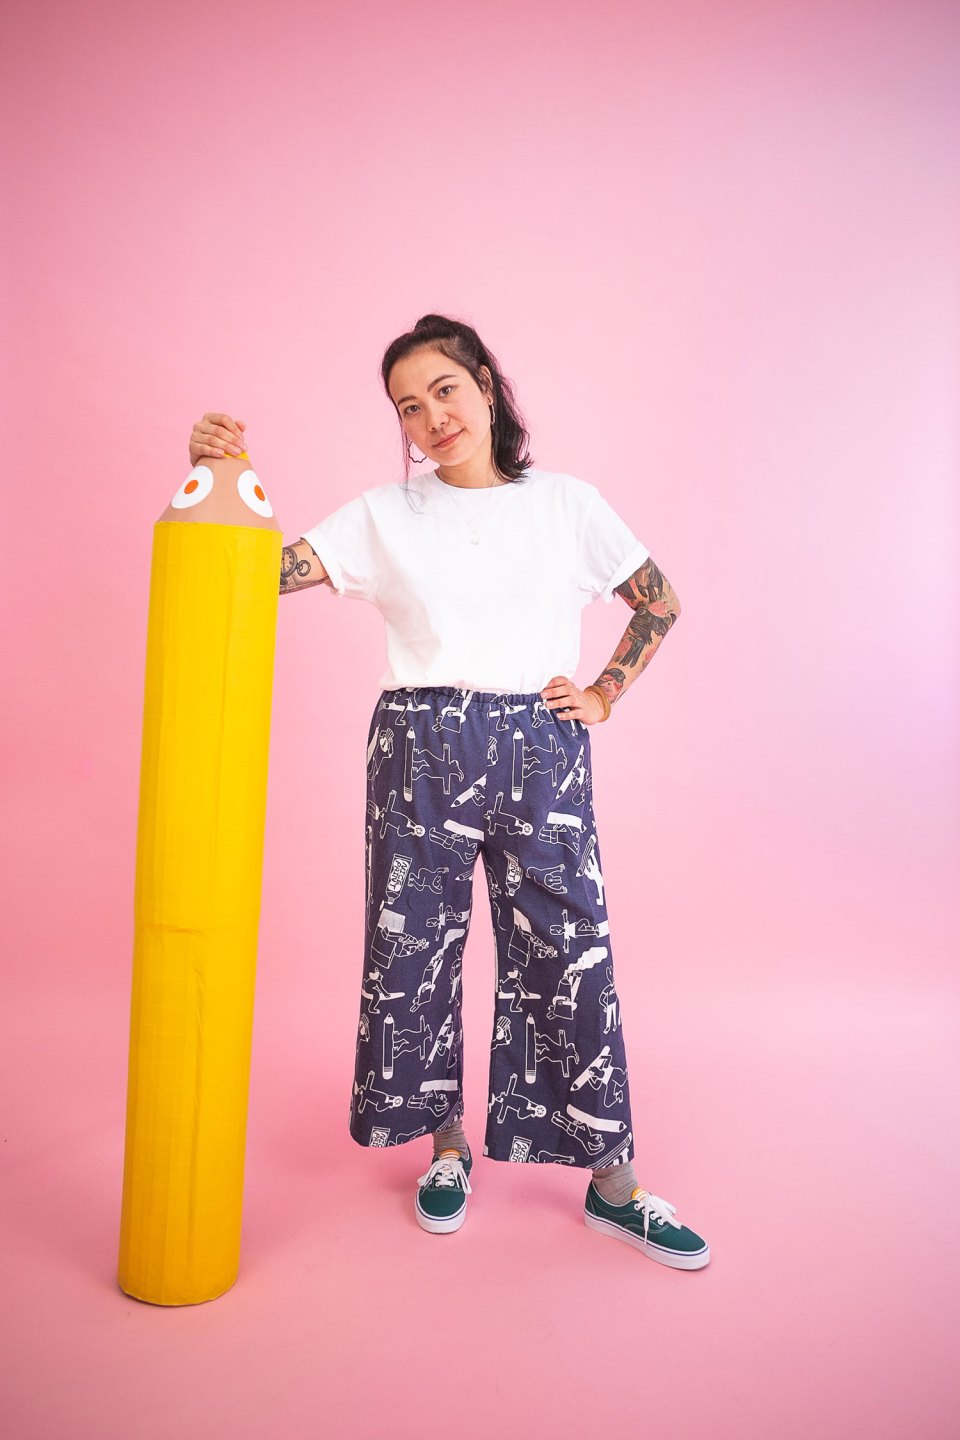 Becky wears a crisp white t-shirt with wide leg all over print denim trousers made by YUK FUN and posing with a giant yellow pencil